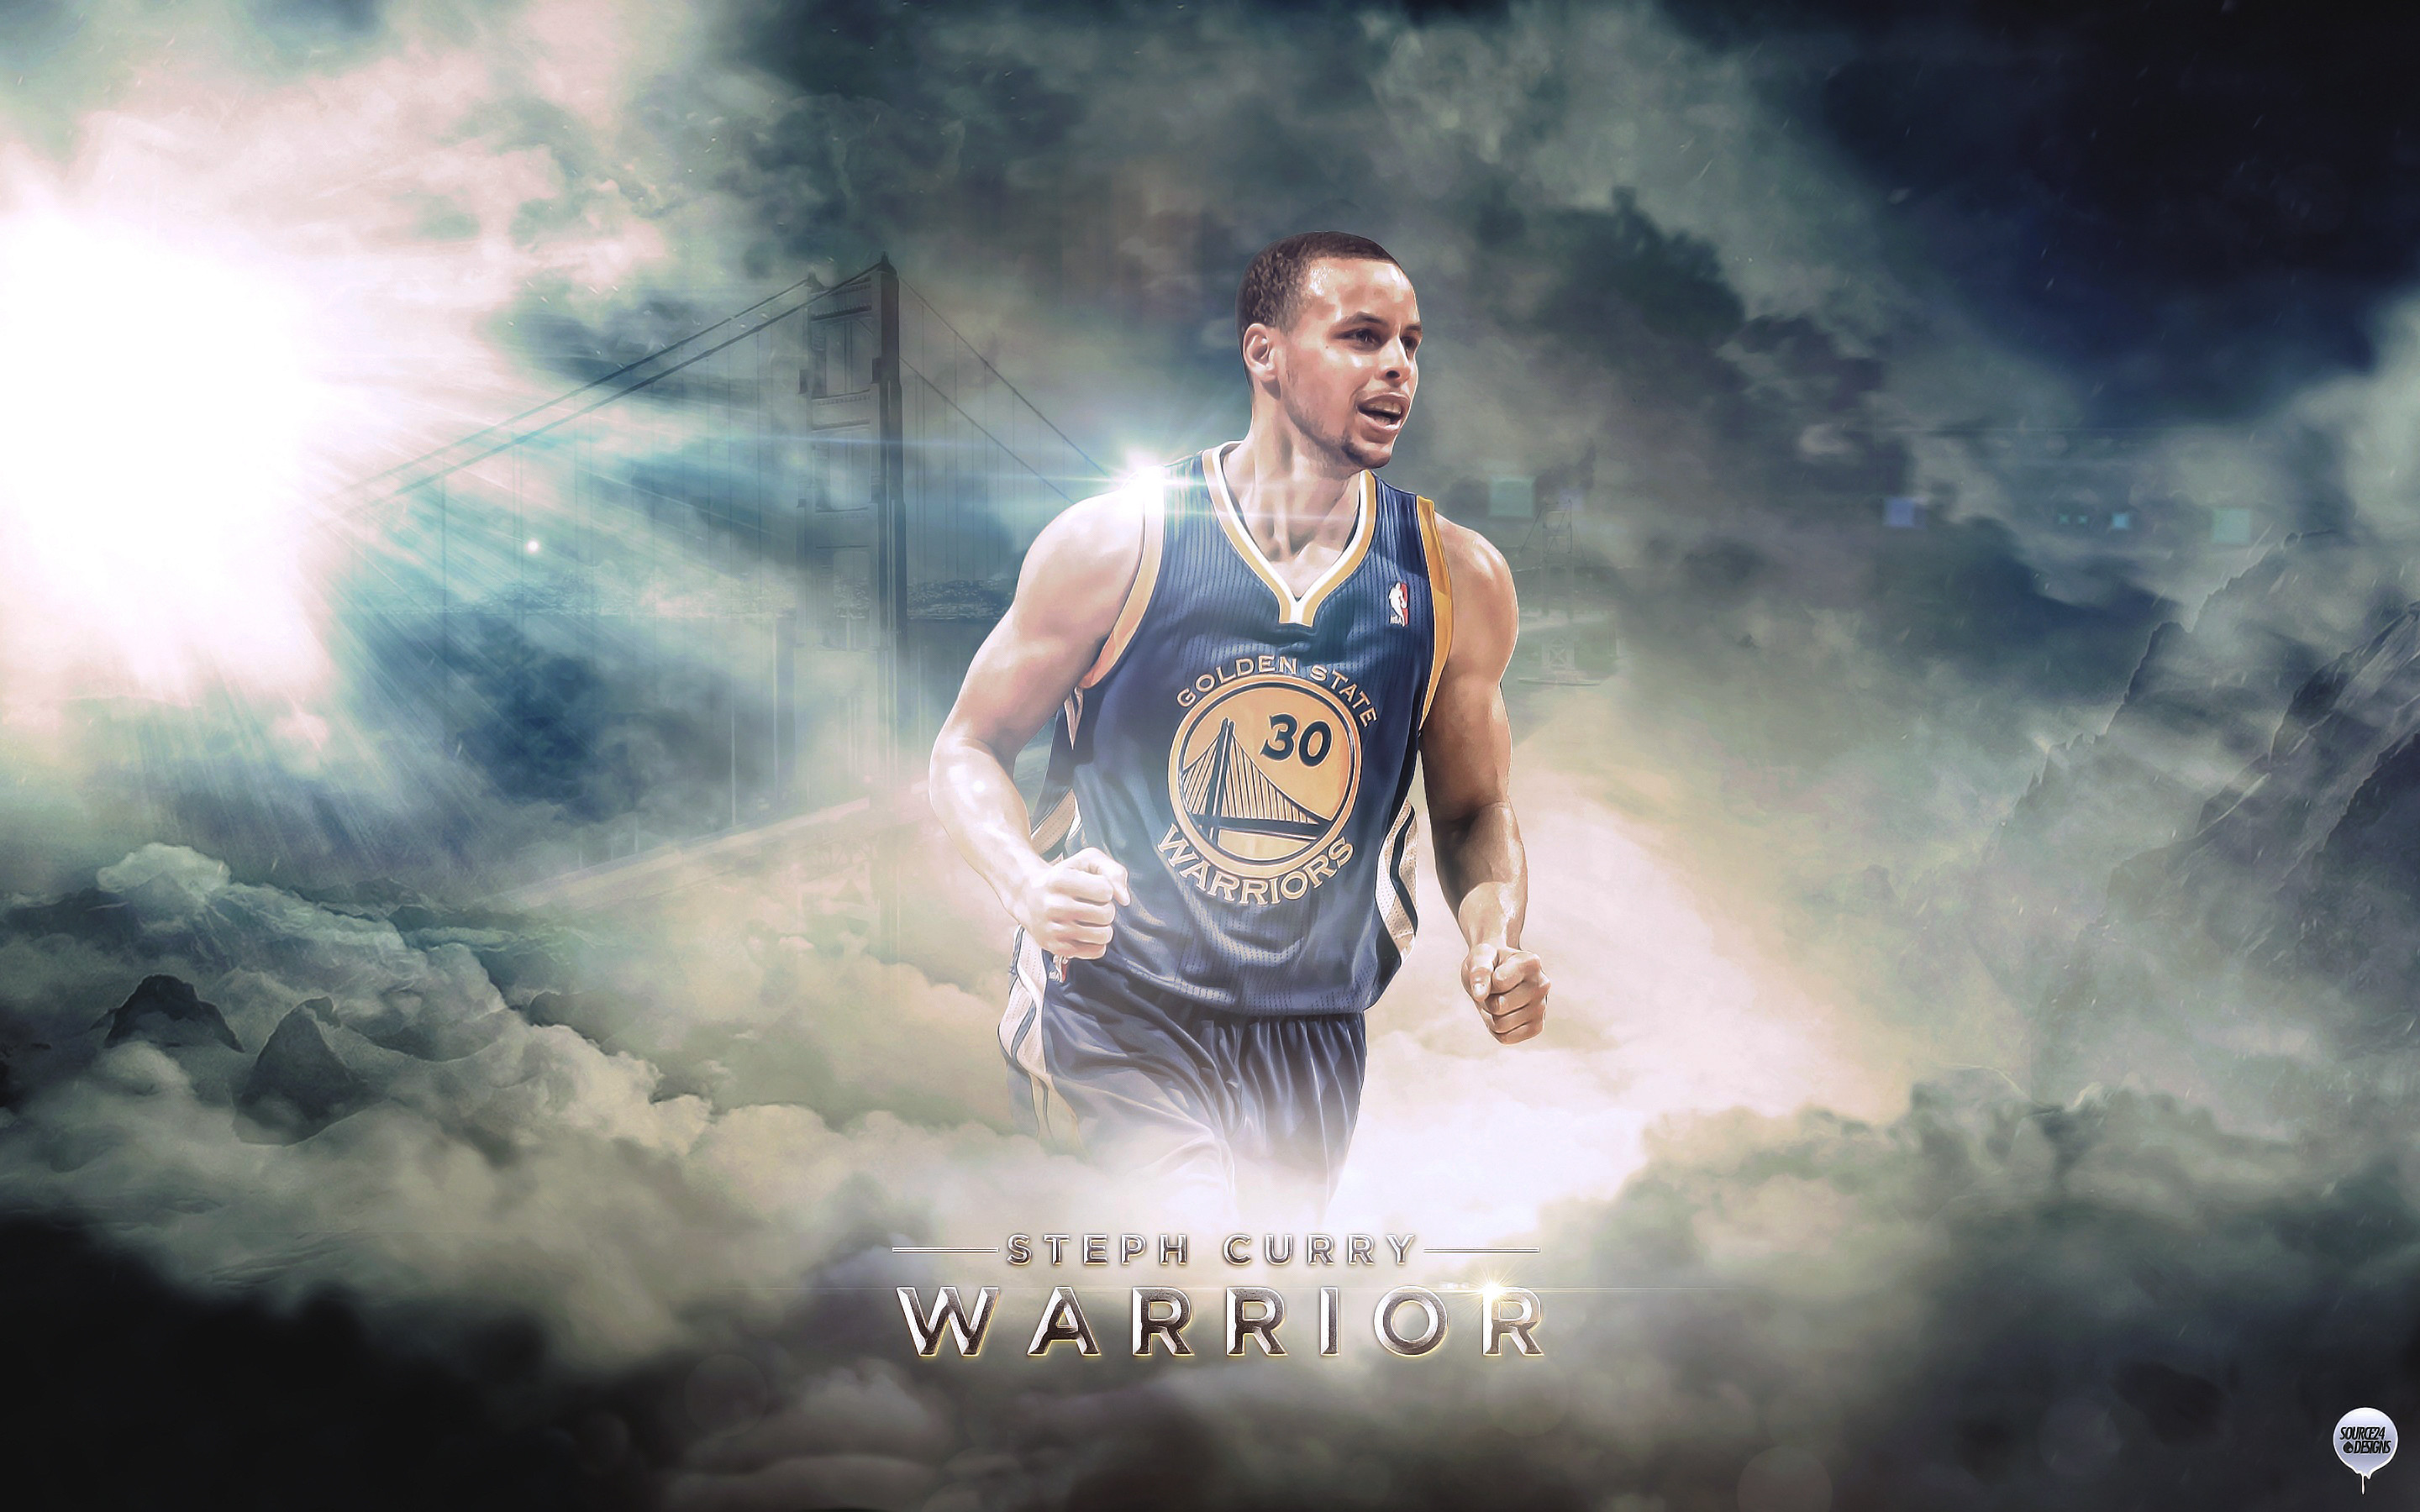 Stephen Curry Wallpaper Free Download   Wallpapers, Backgrounds .